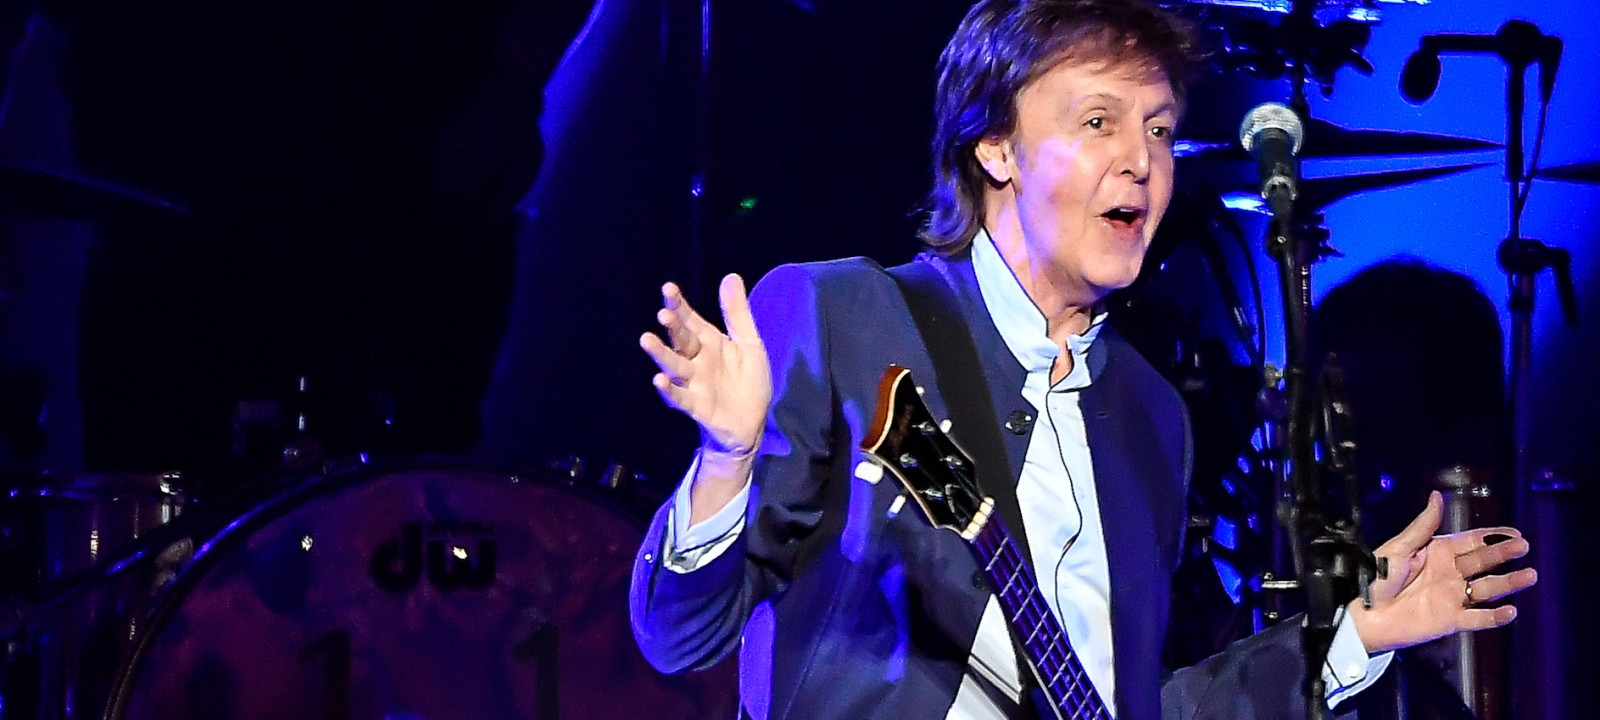 Paul McCartney Performs On Opening Night Of The One Tour At Save Mart Center